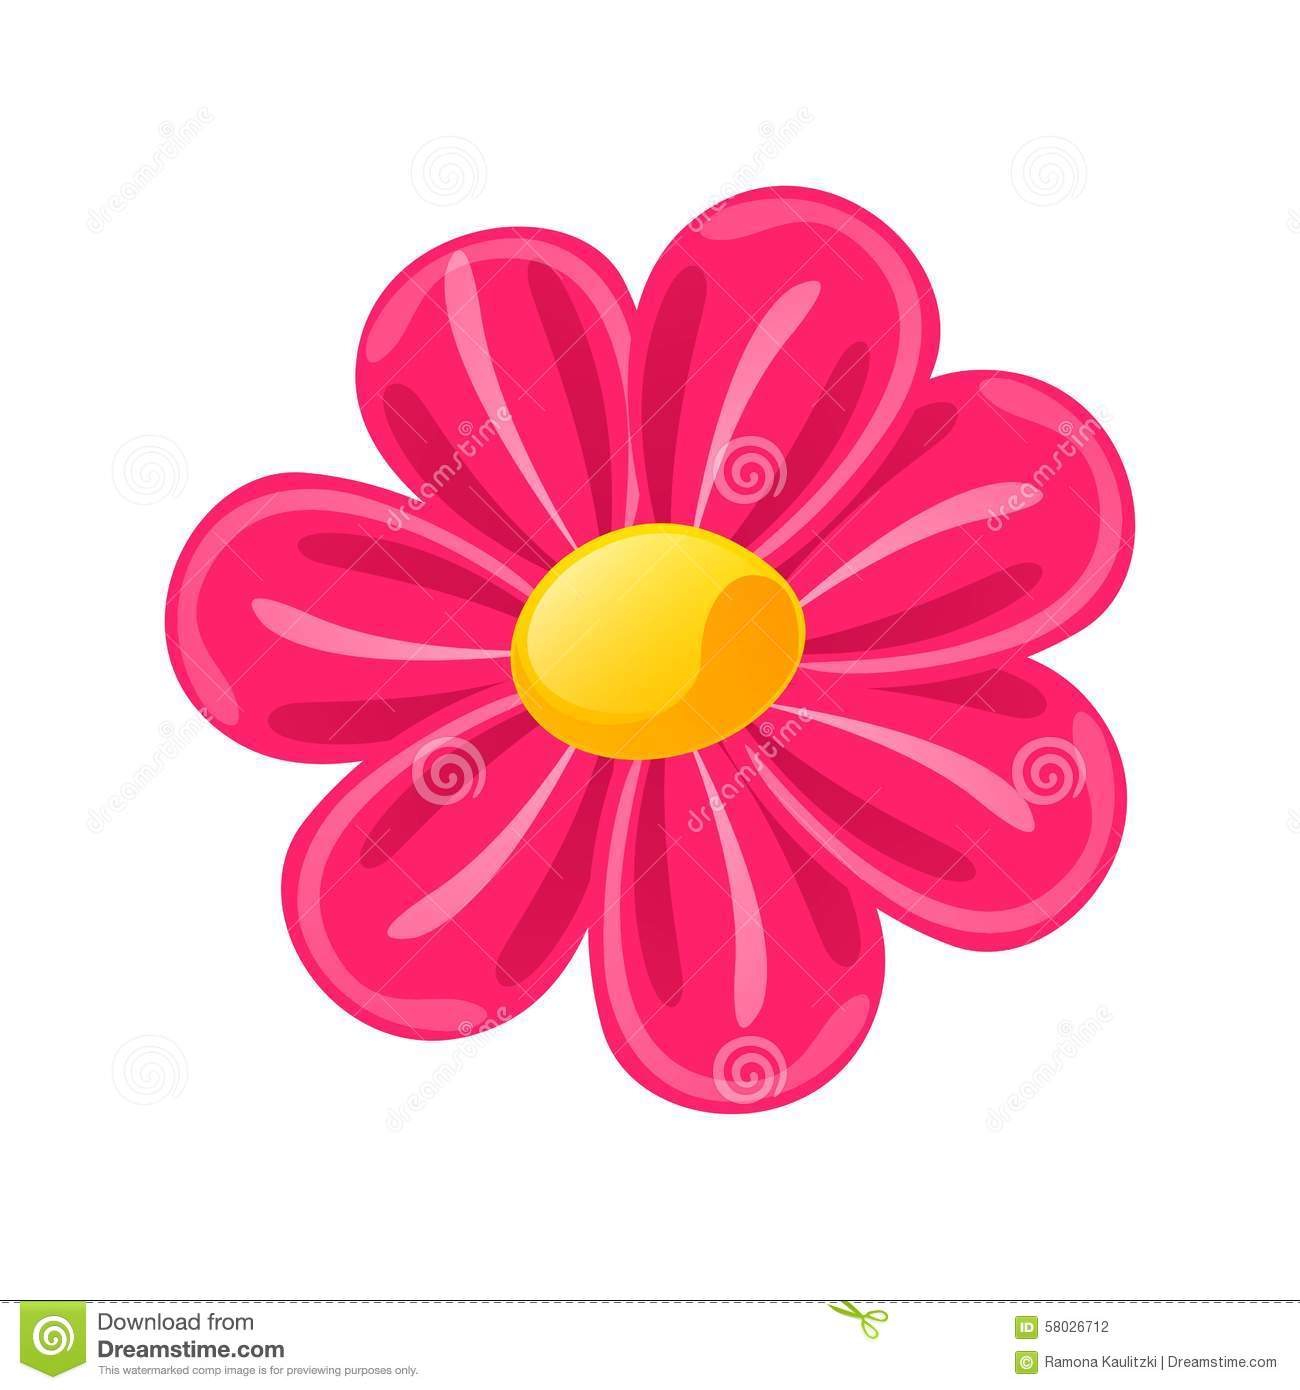 Pink flower stock illustration illustration of illustration 58026712 pink flower royalty free illustration mightylinksfo